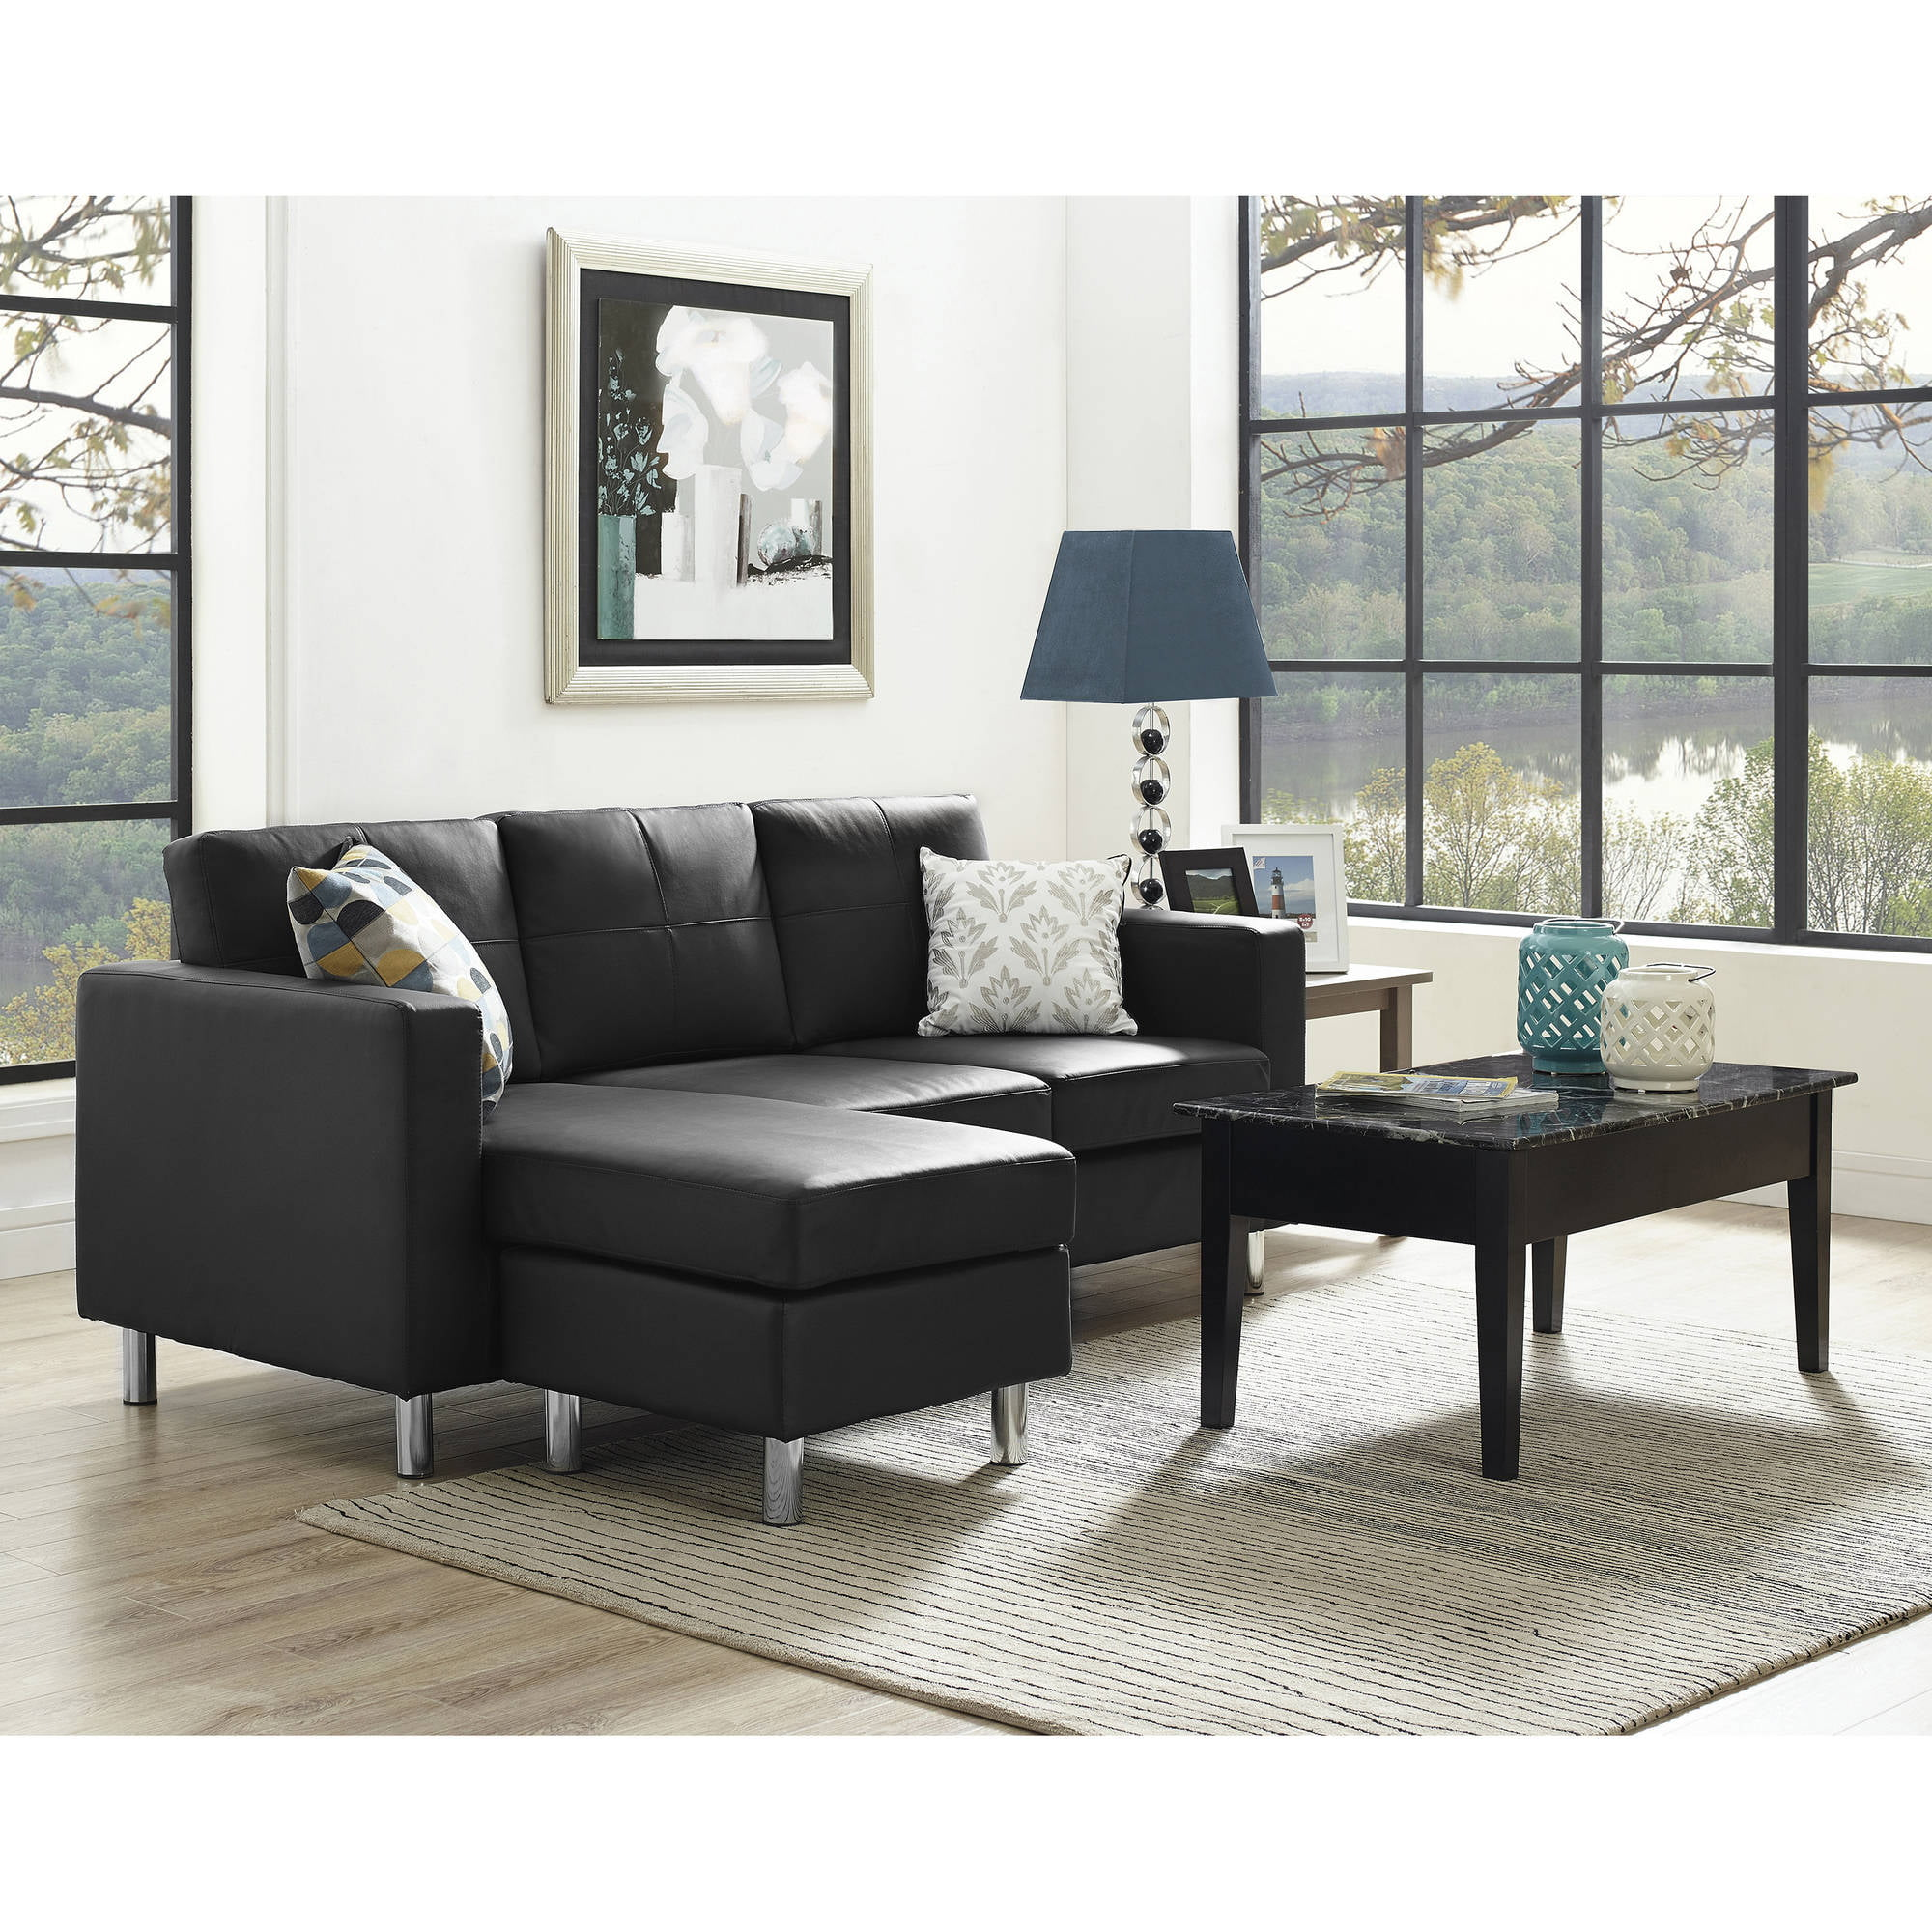 Dorel Living Small Spaces Configurable Sectional Sofa, Multiple ...